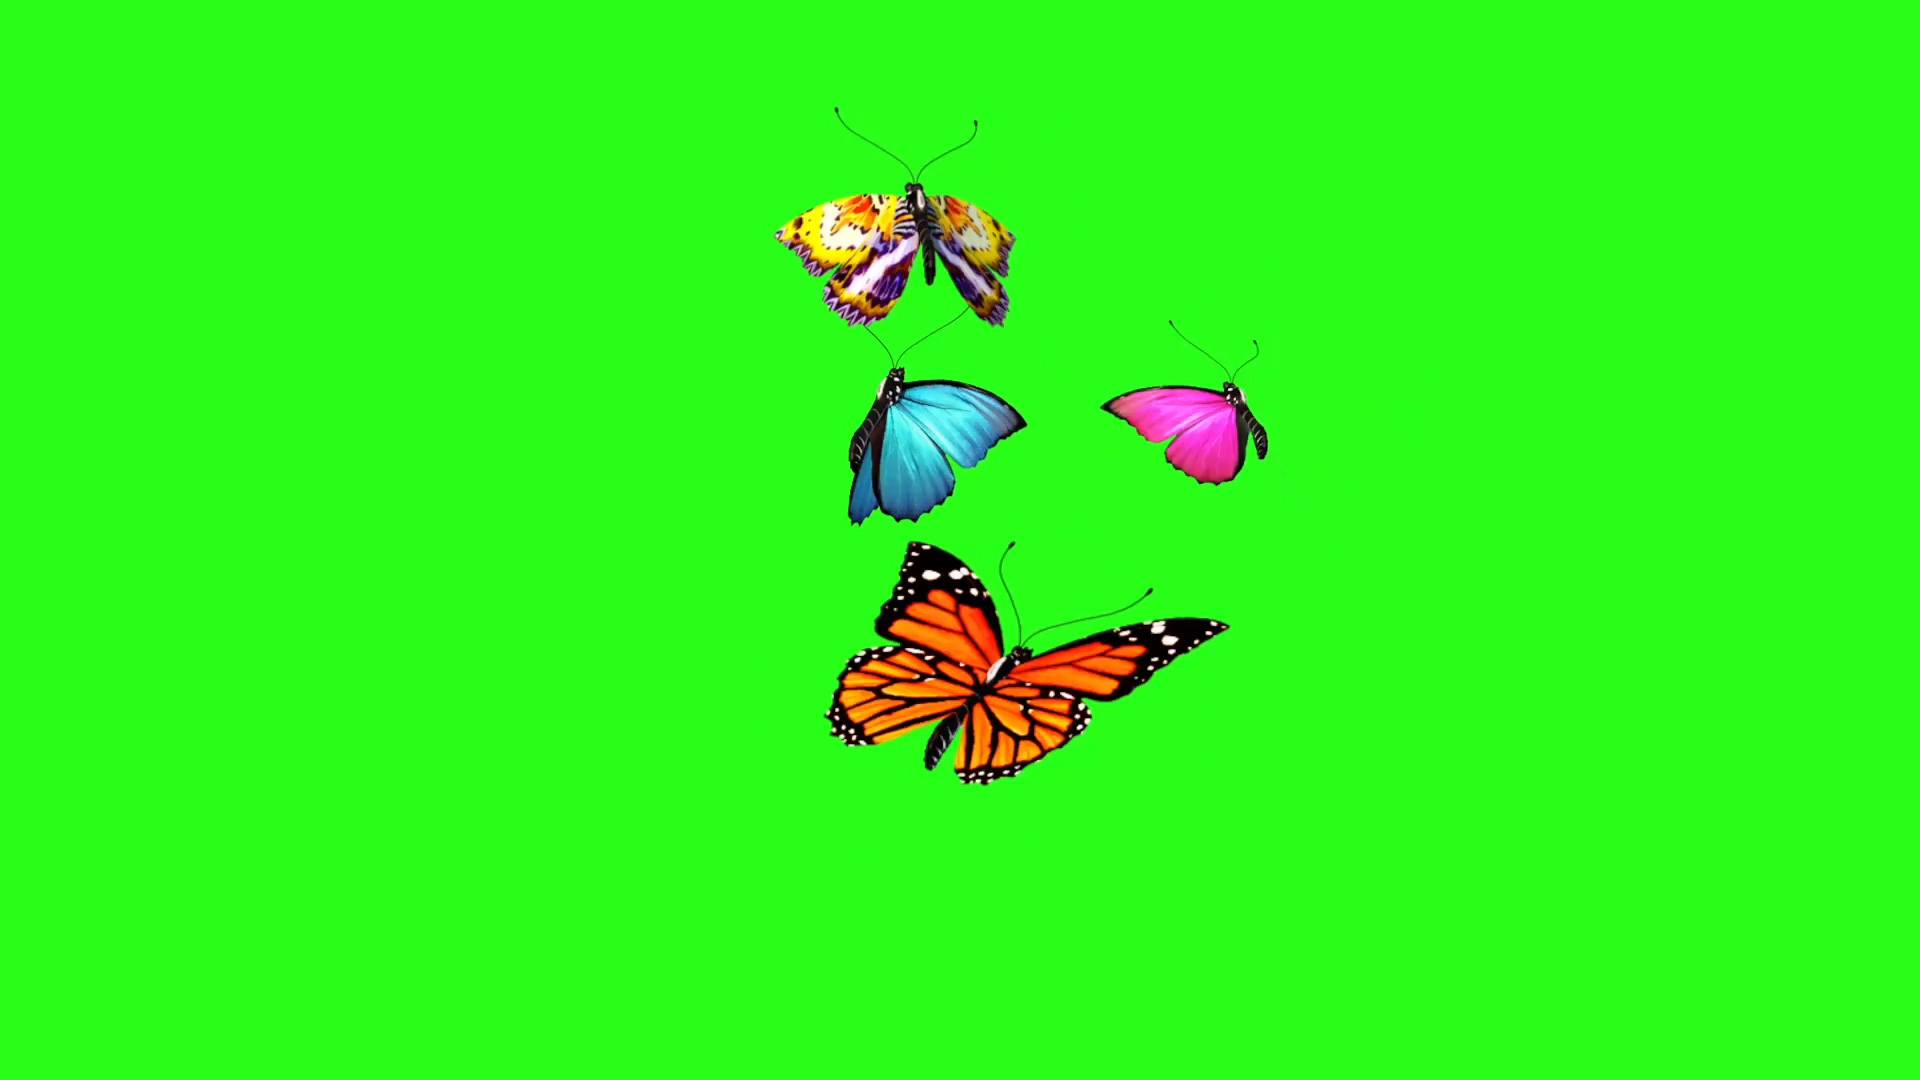 Butterflies Flying - 3D Model Animated